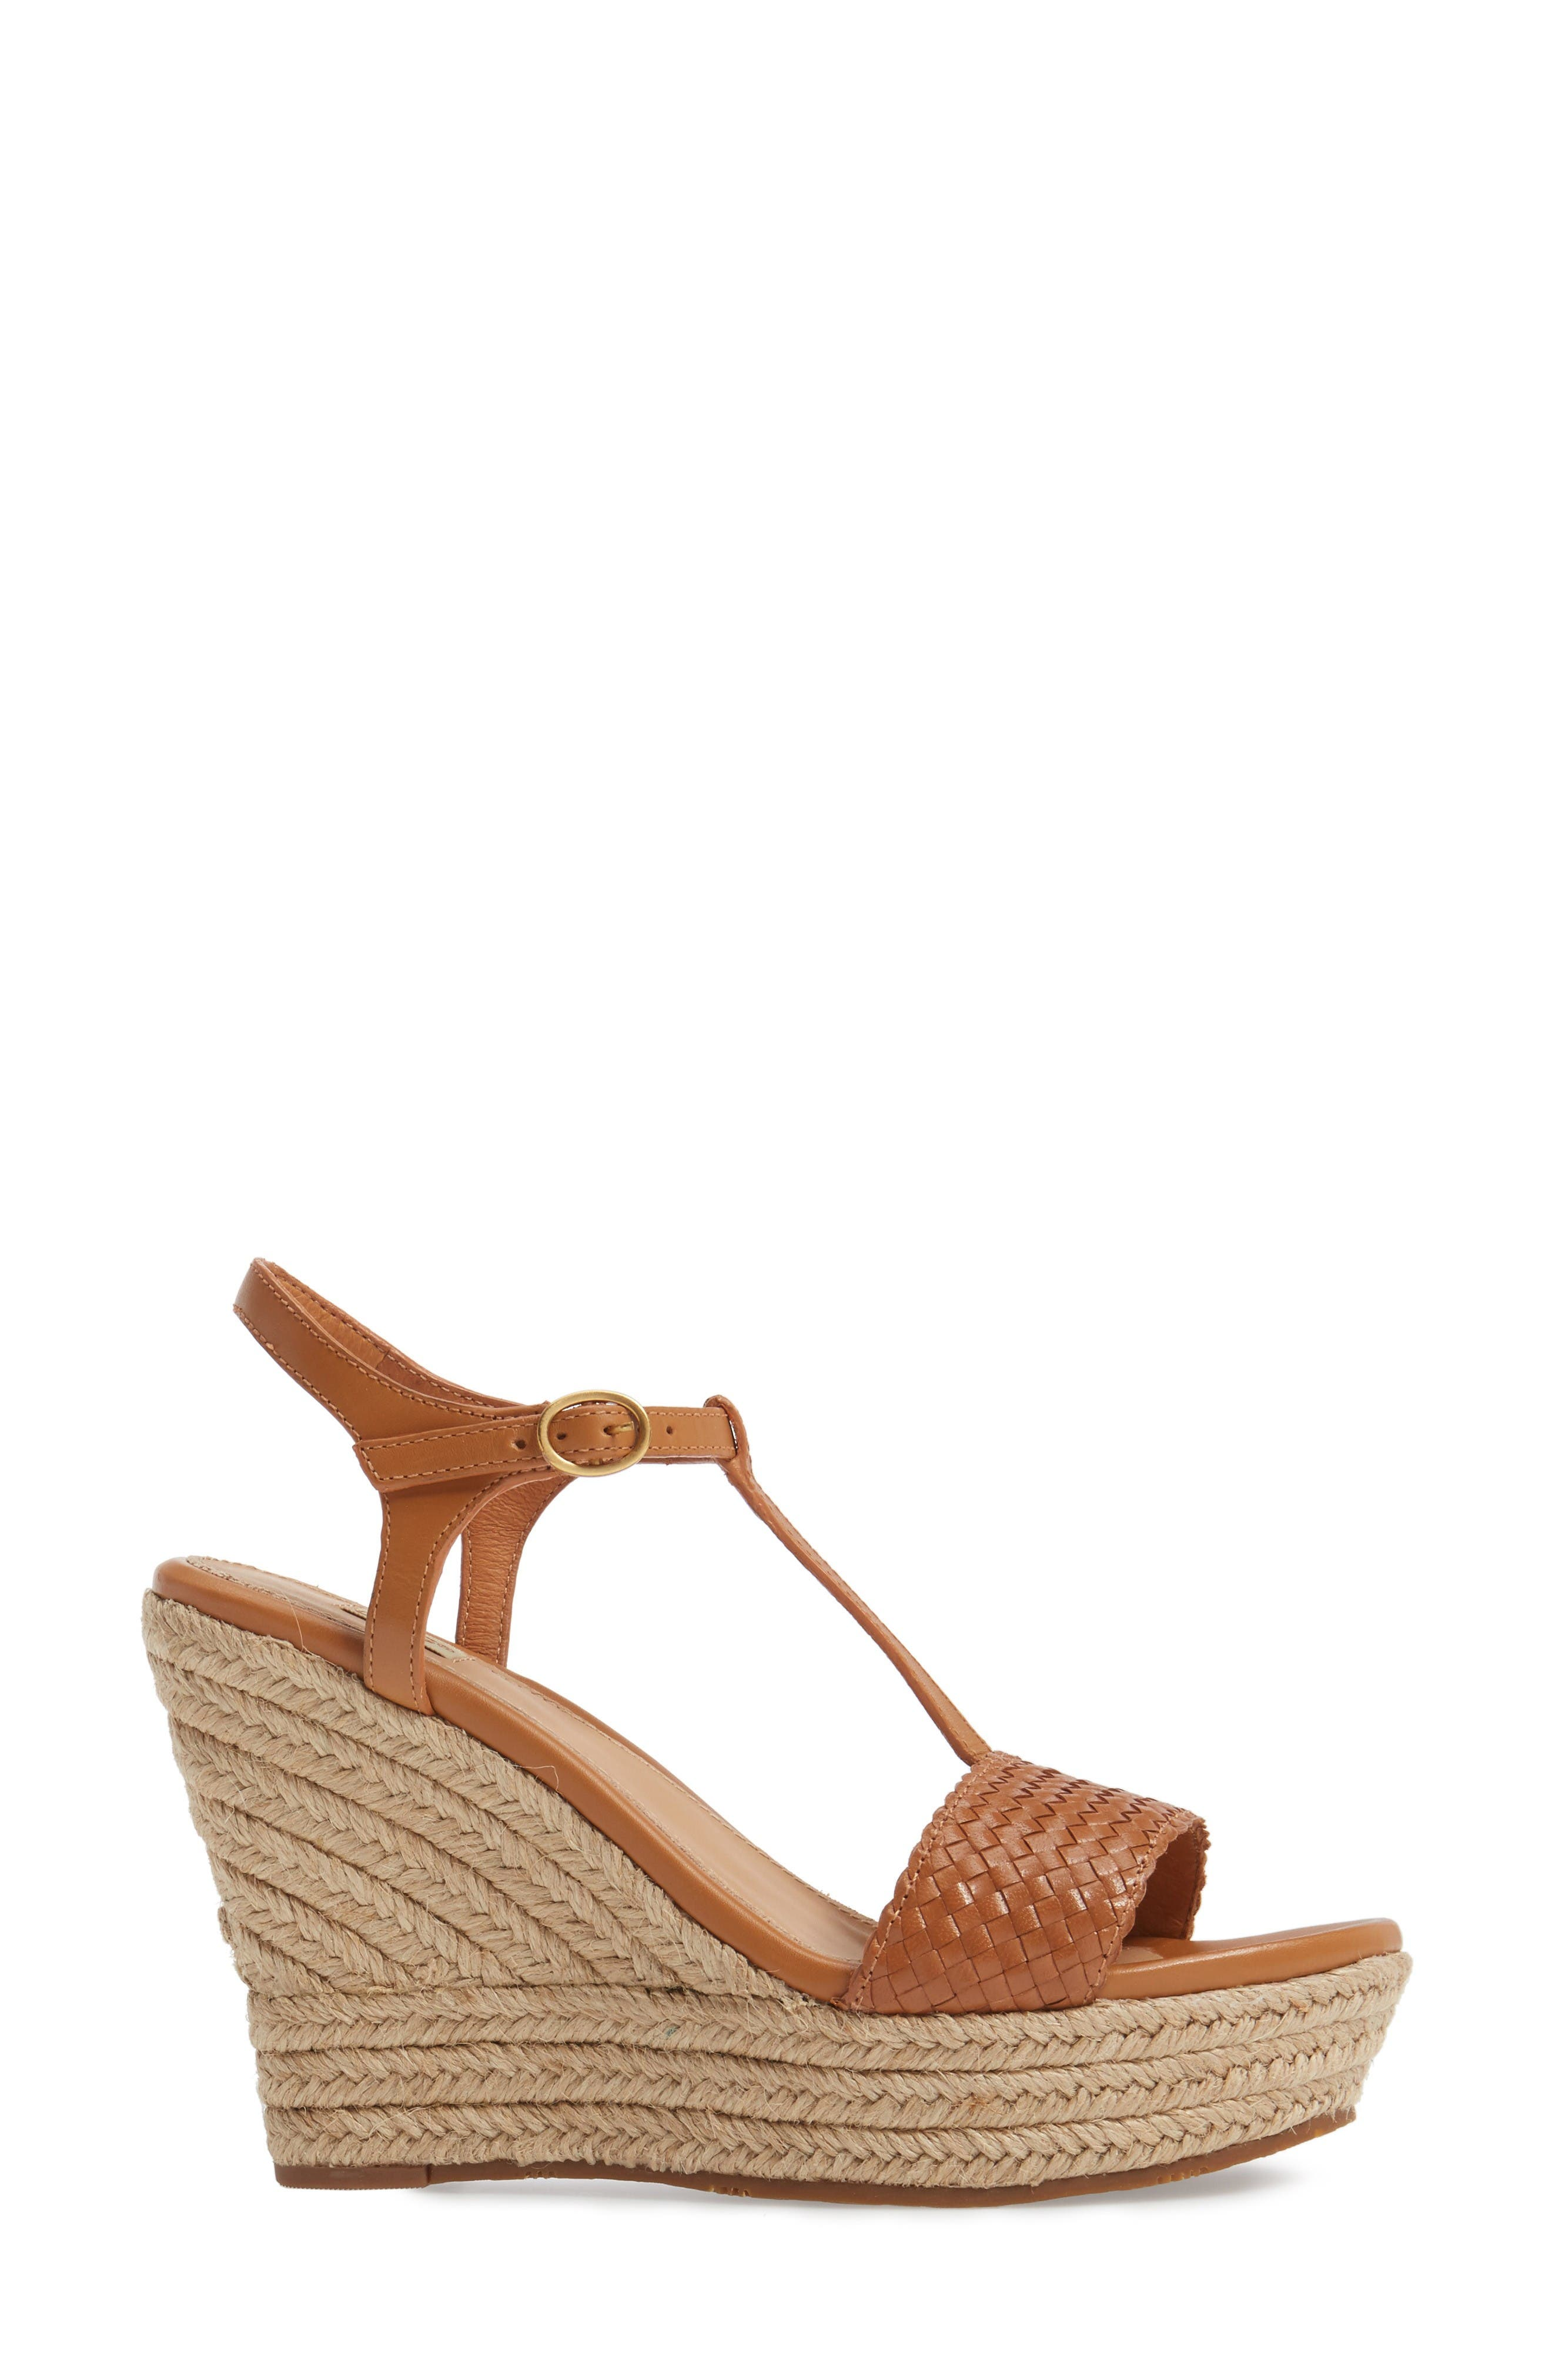 Alternate Image 3  - UGG® Fitchie II Espadrille Wedge Sandal (Women)